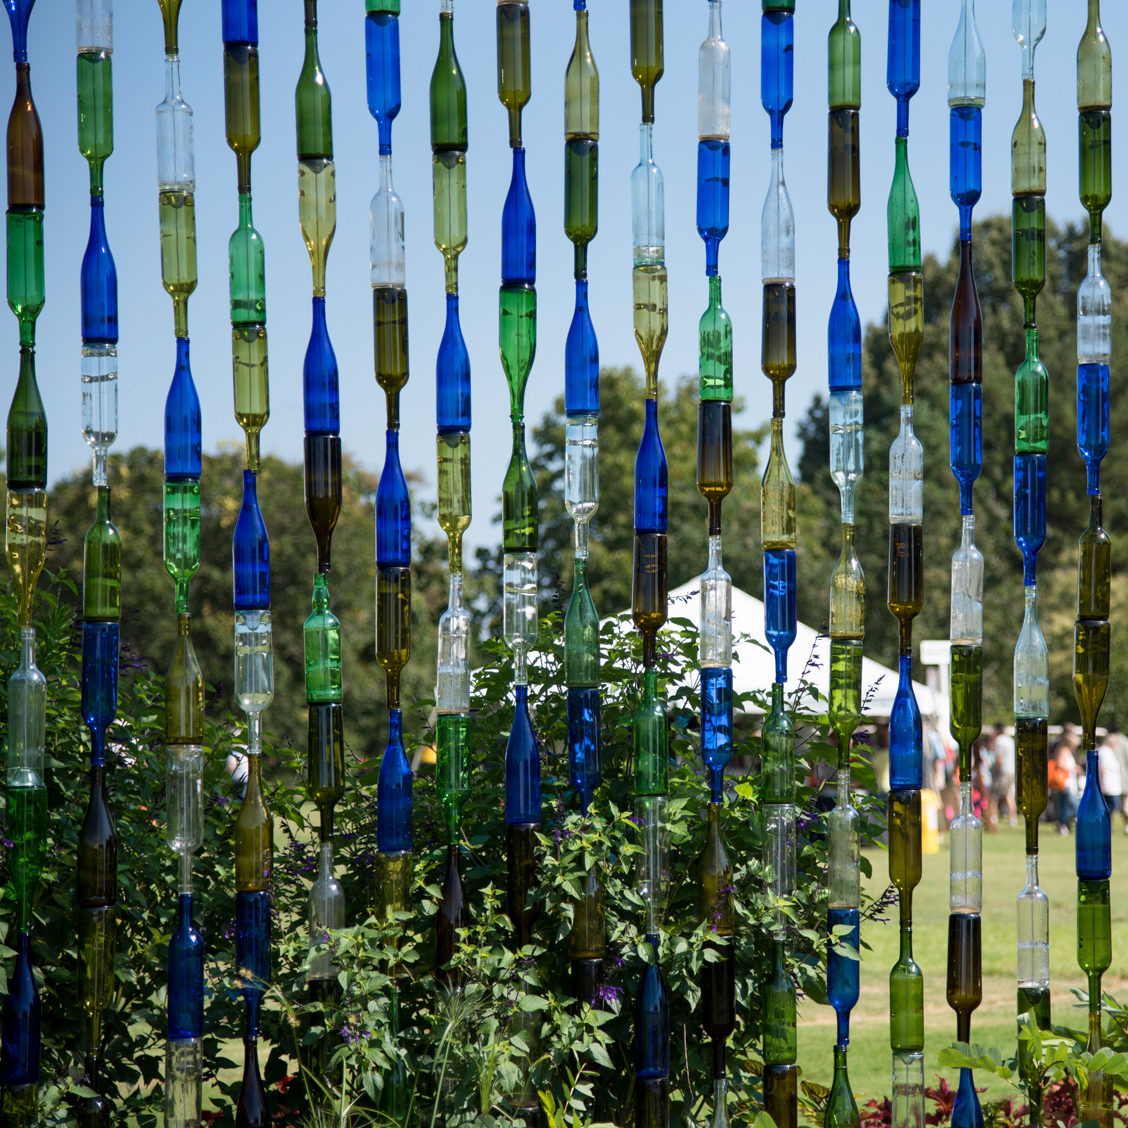 Colored Glass Bottle Wall at the UT Gardens in Jackson